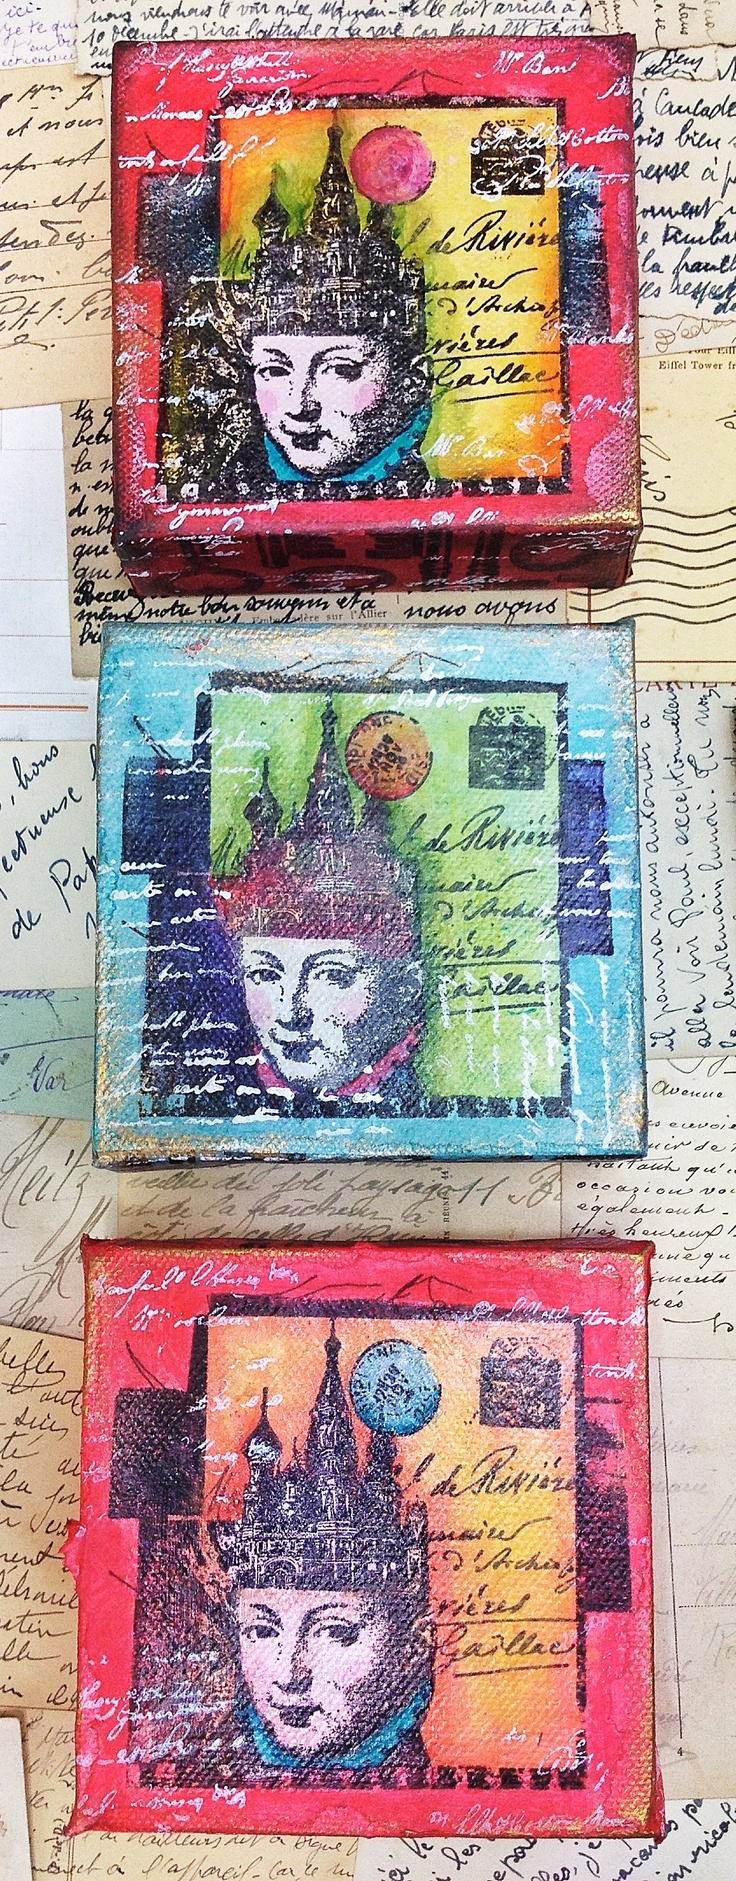 Now in Triplicate. Lynne Perrella Stamps on Crackly Tissue coloured with Fresco Finish Chalk Acrylics mounted to a PaperArtsy 4x4 Deep Canvas.